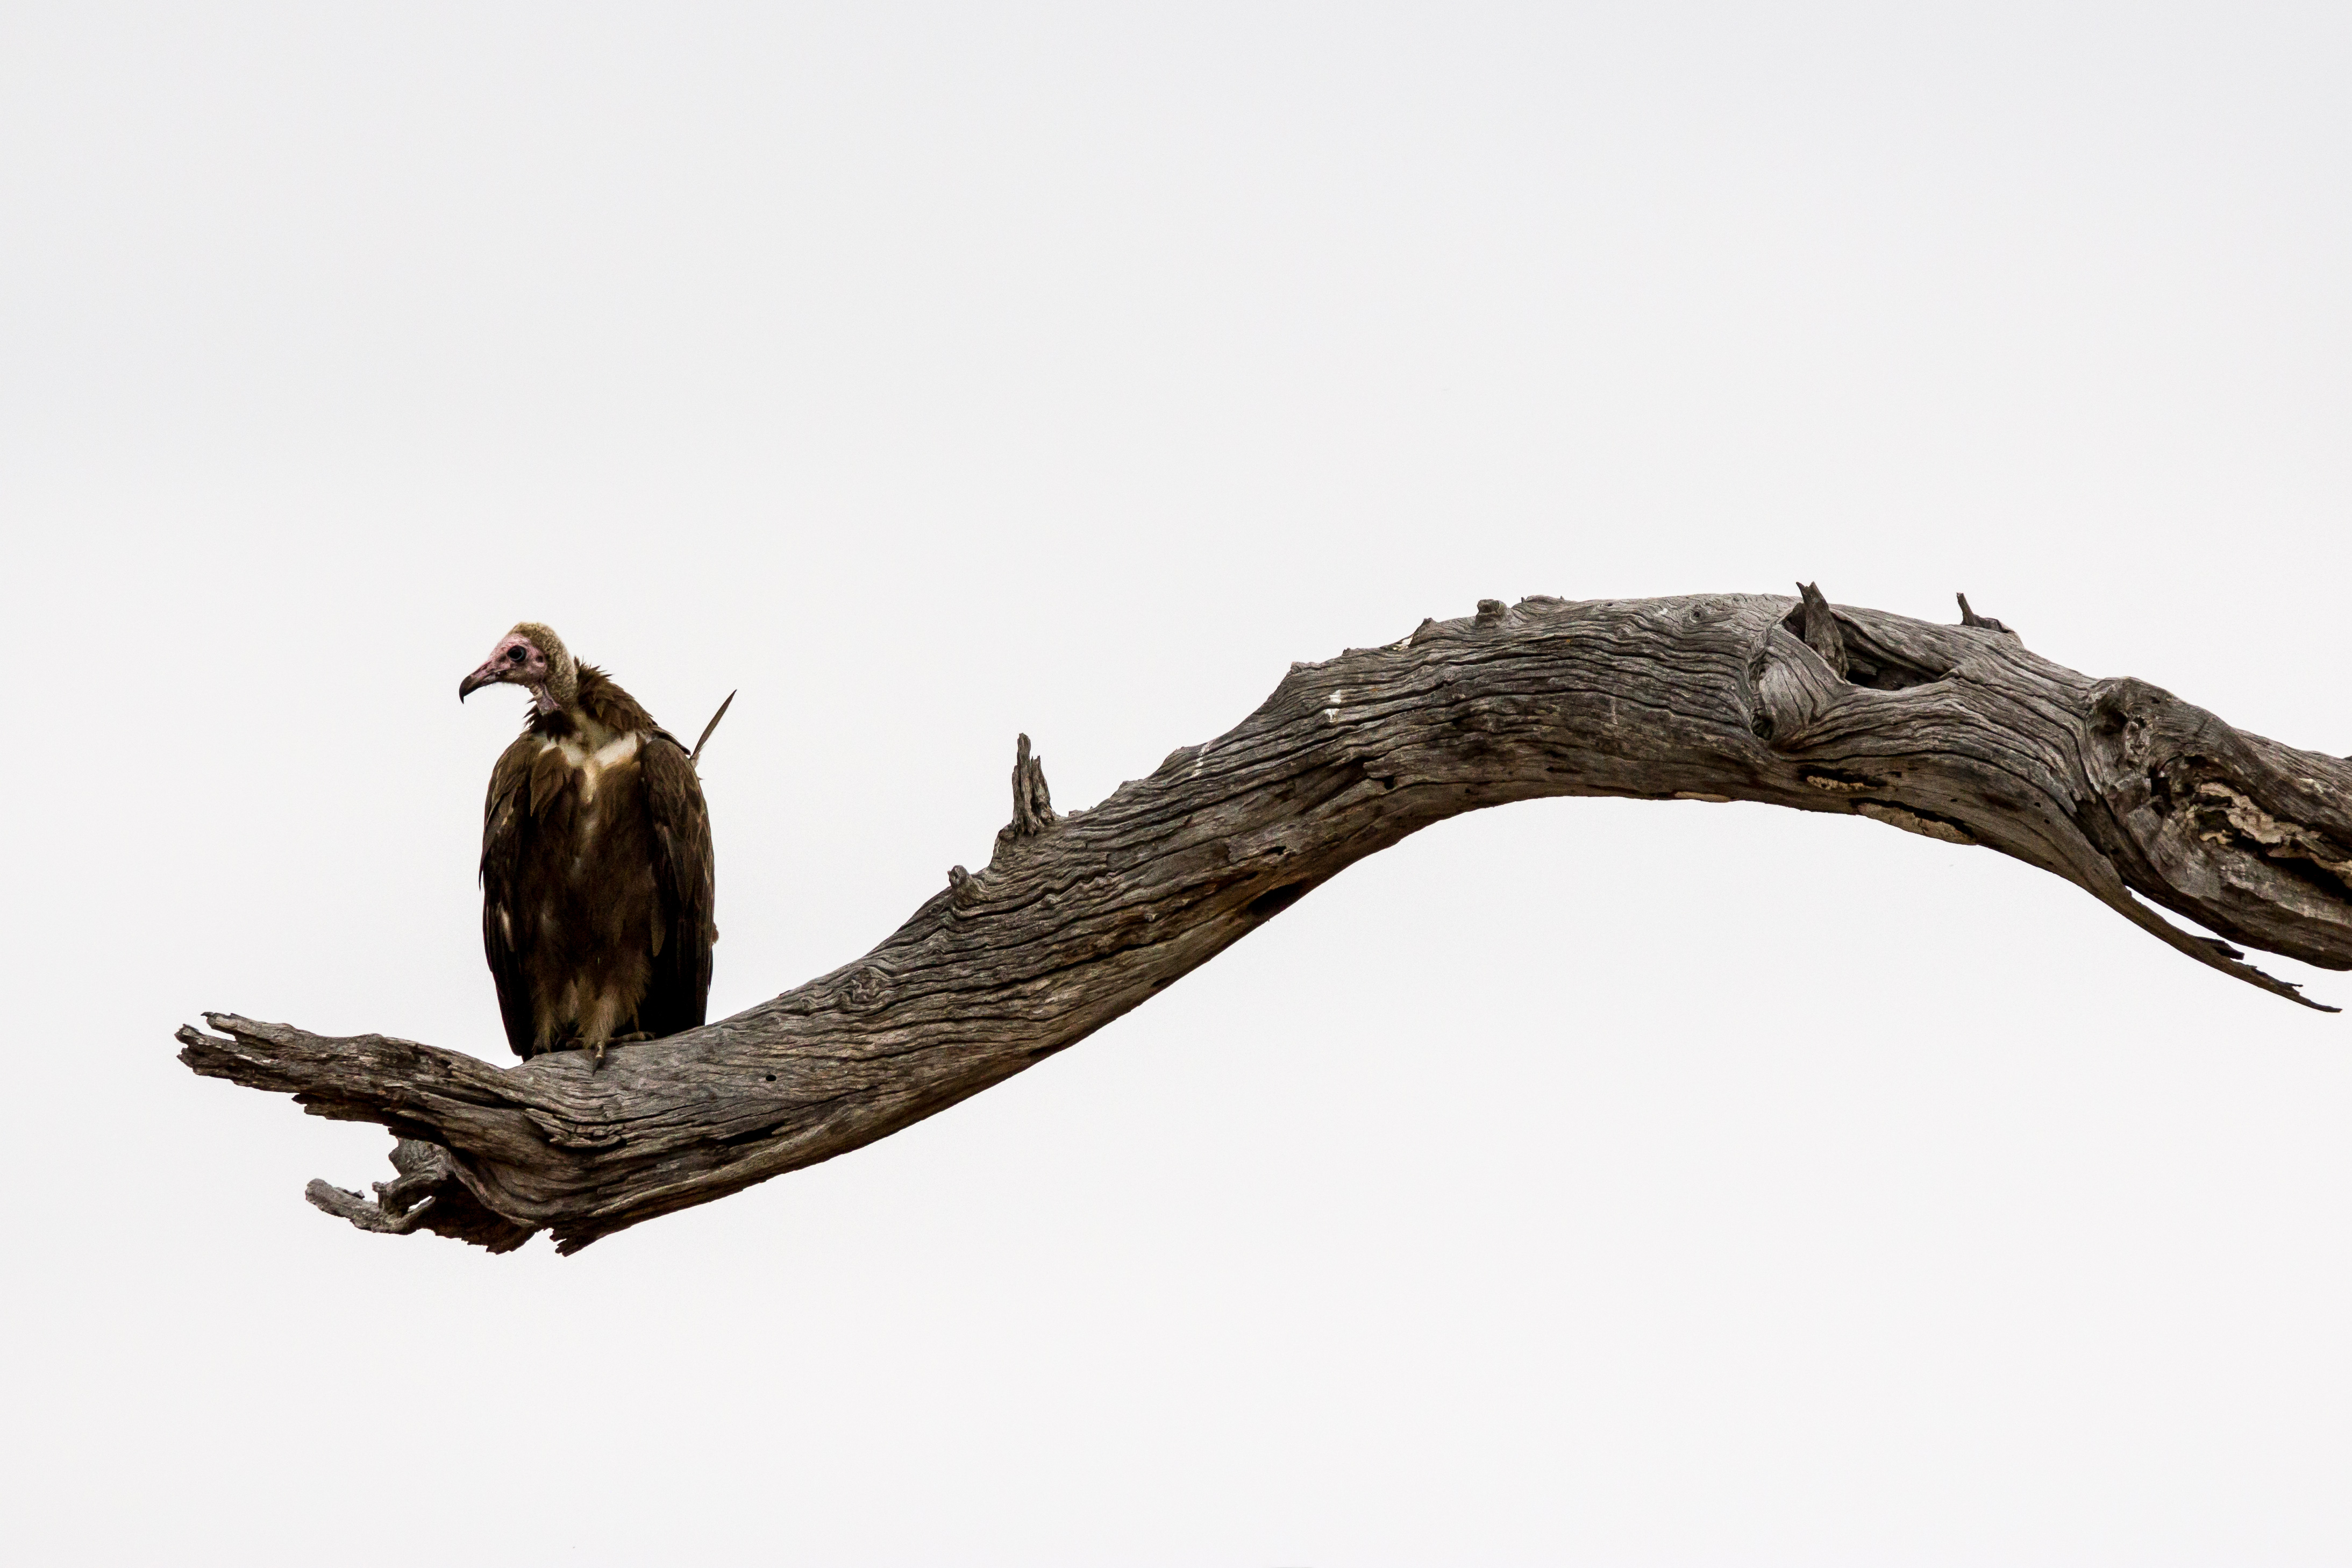 http://upload.wikimedia.org/wikipedia/commons/0/05/African_Hooded_Vulture_%28Necrosyrtes_monachus%29%2C_Kruger_National_Park.jpg